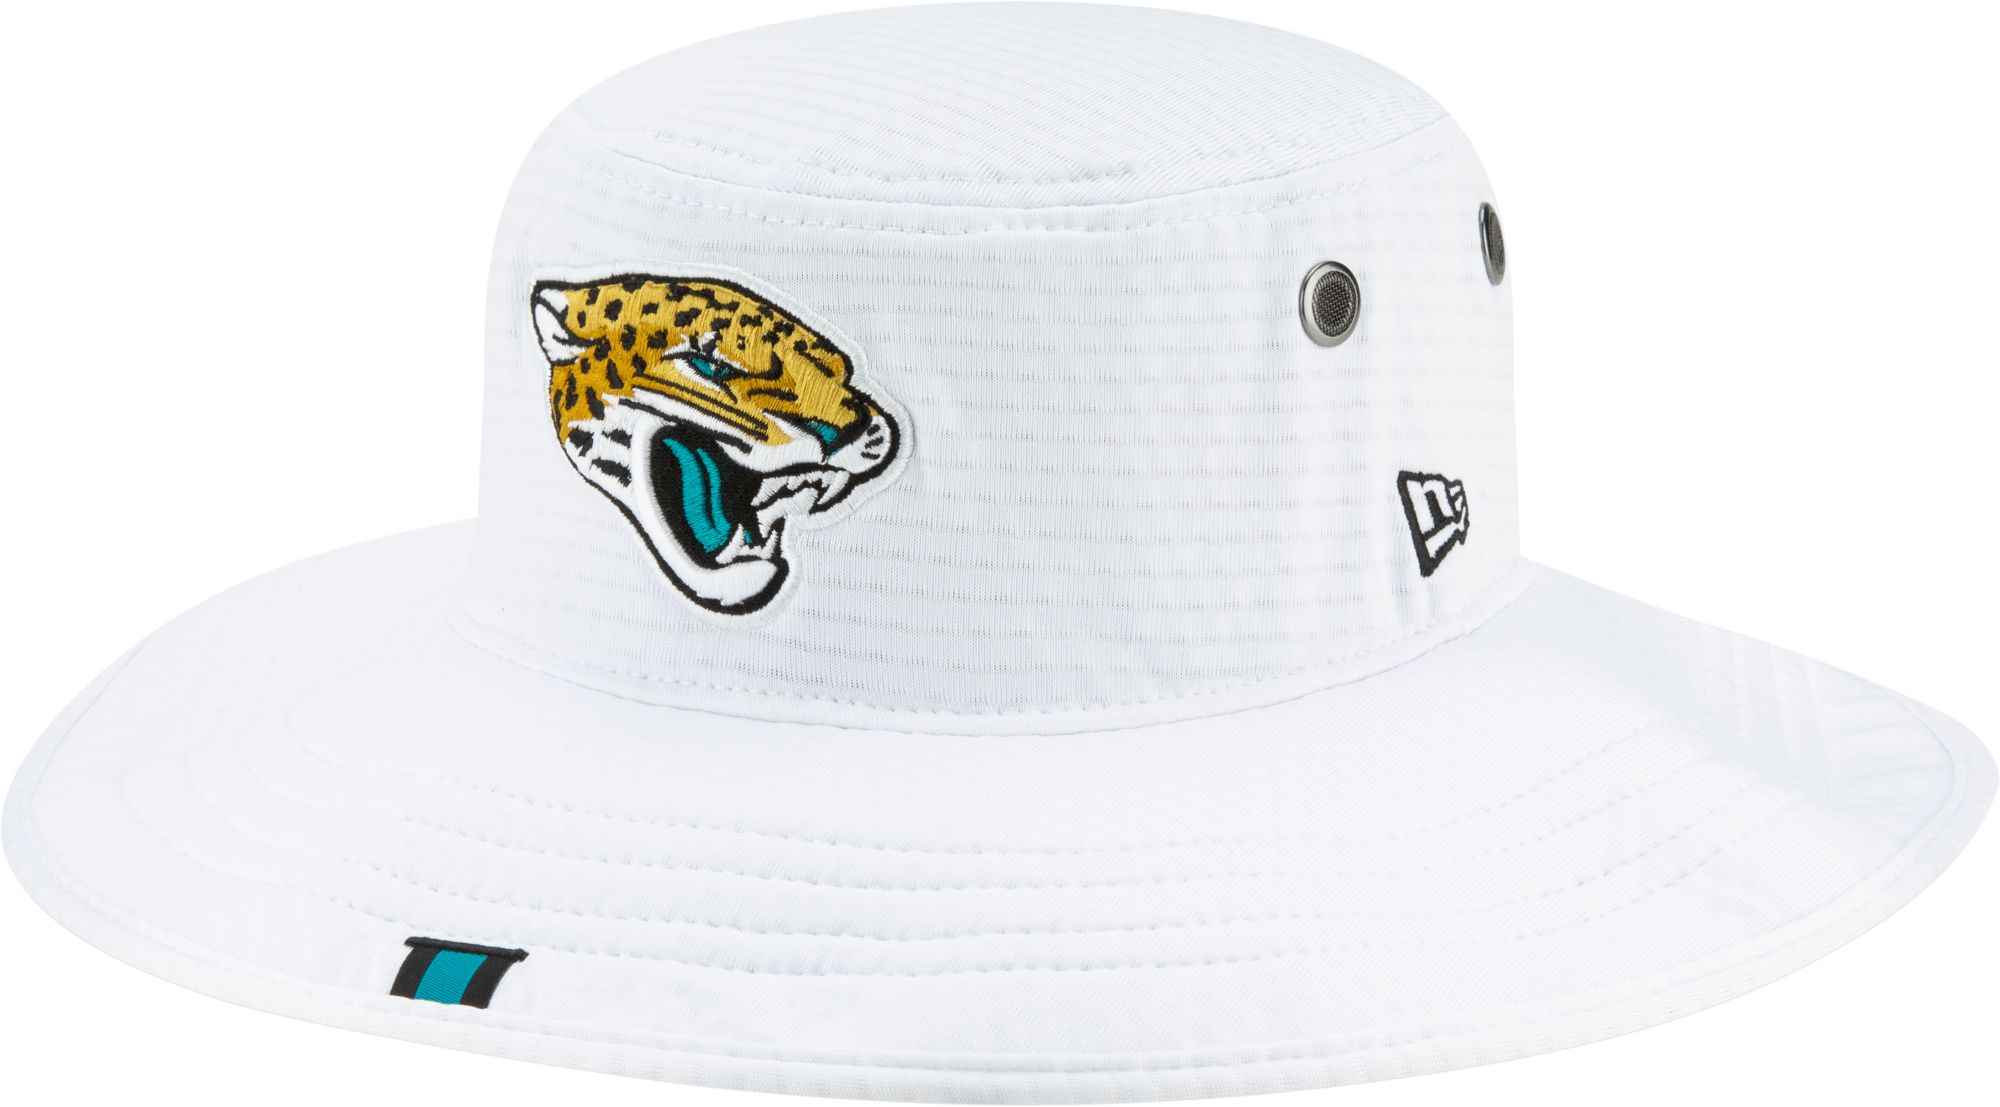 ca36e560 New Era Men's Jacksonville Jaguars Sideline Training Camp Panama White  Bucket Hat